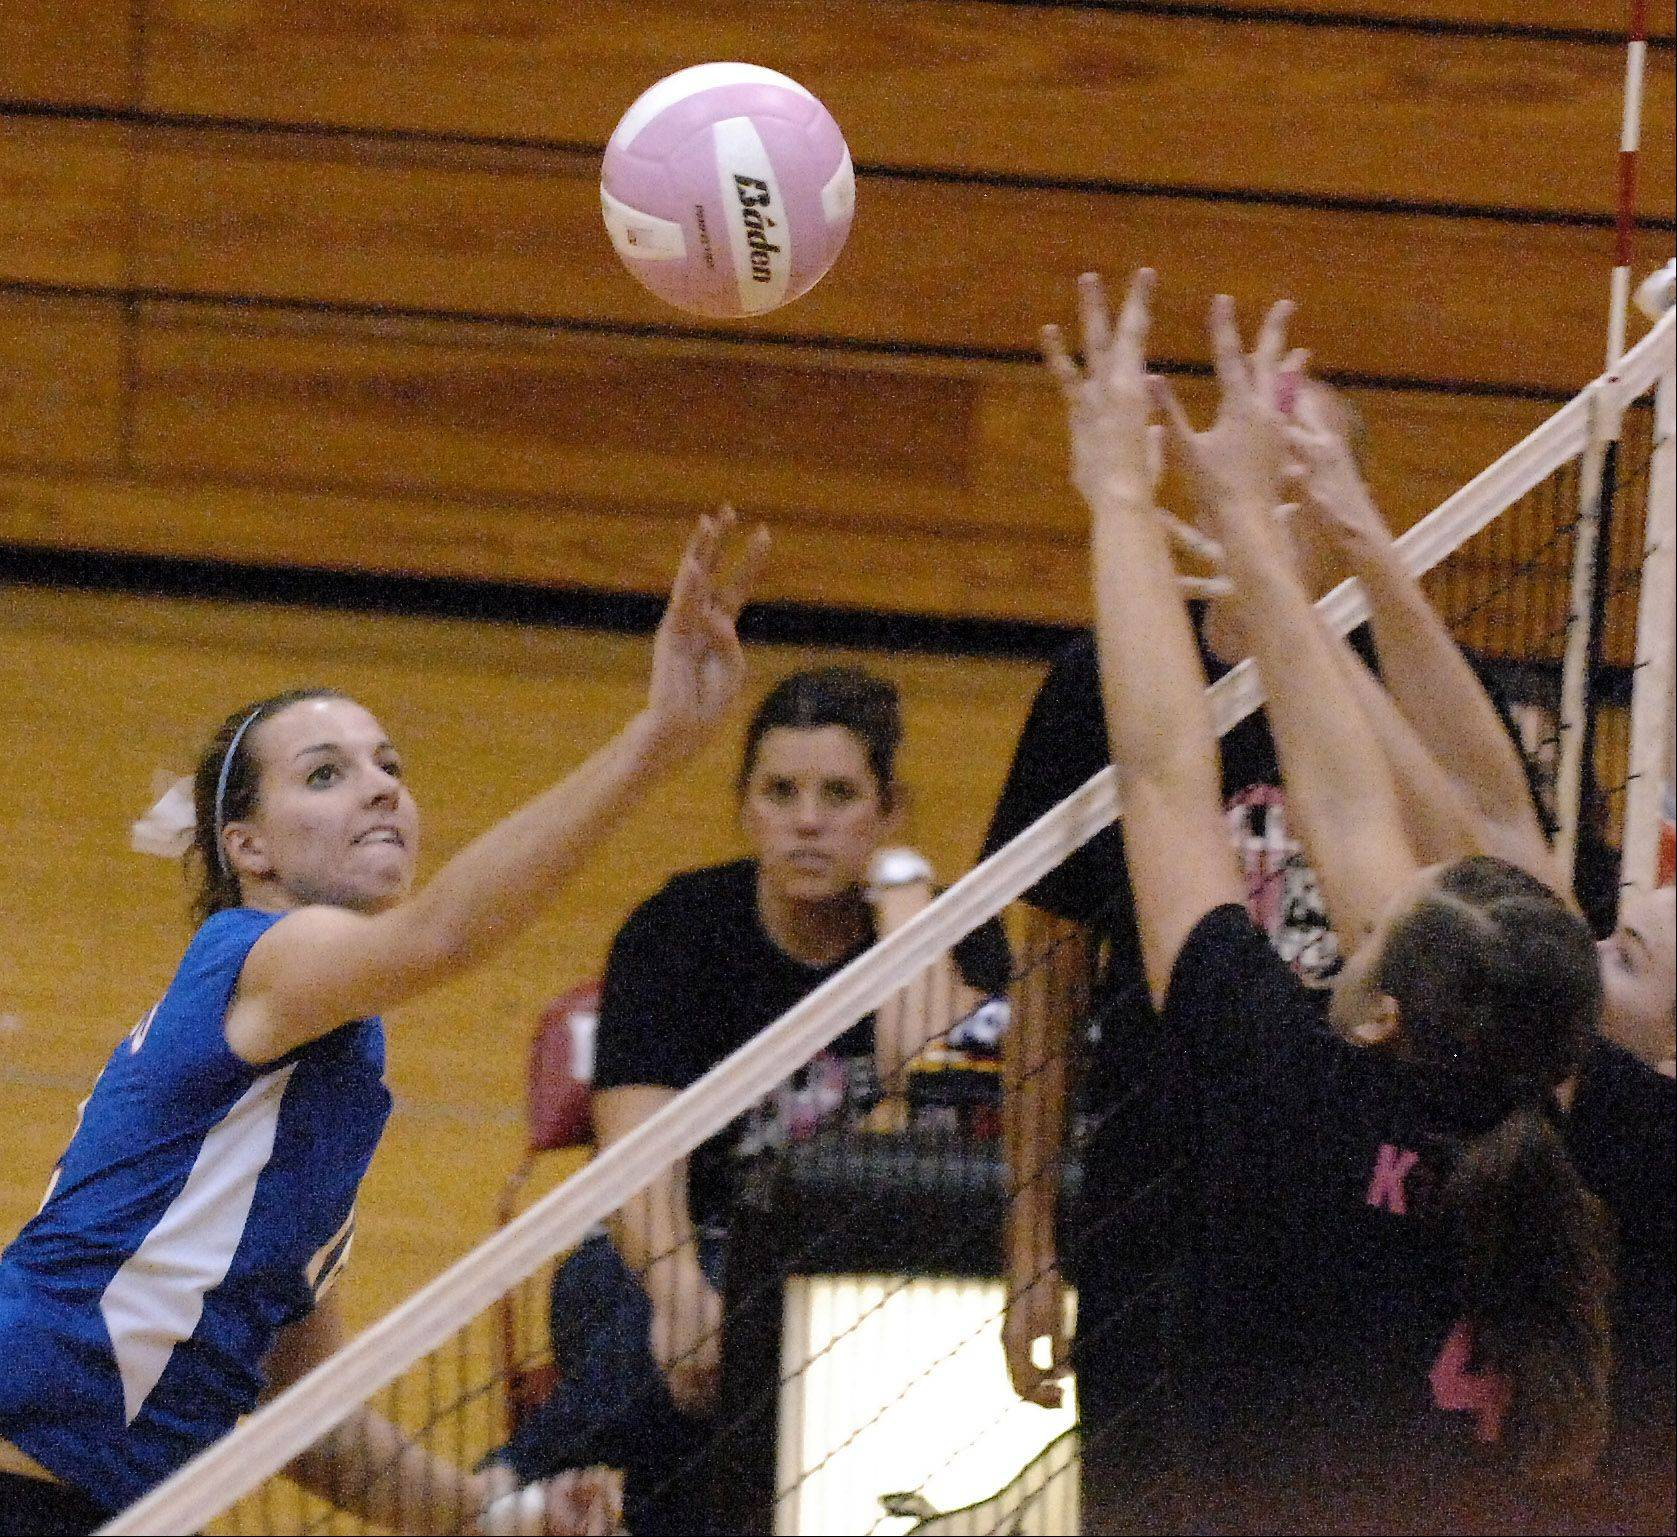 Glenbard South's Anna Watterson dinks the ball over a pair of Batavia blockers during Thursday's game at Batavia.